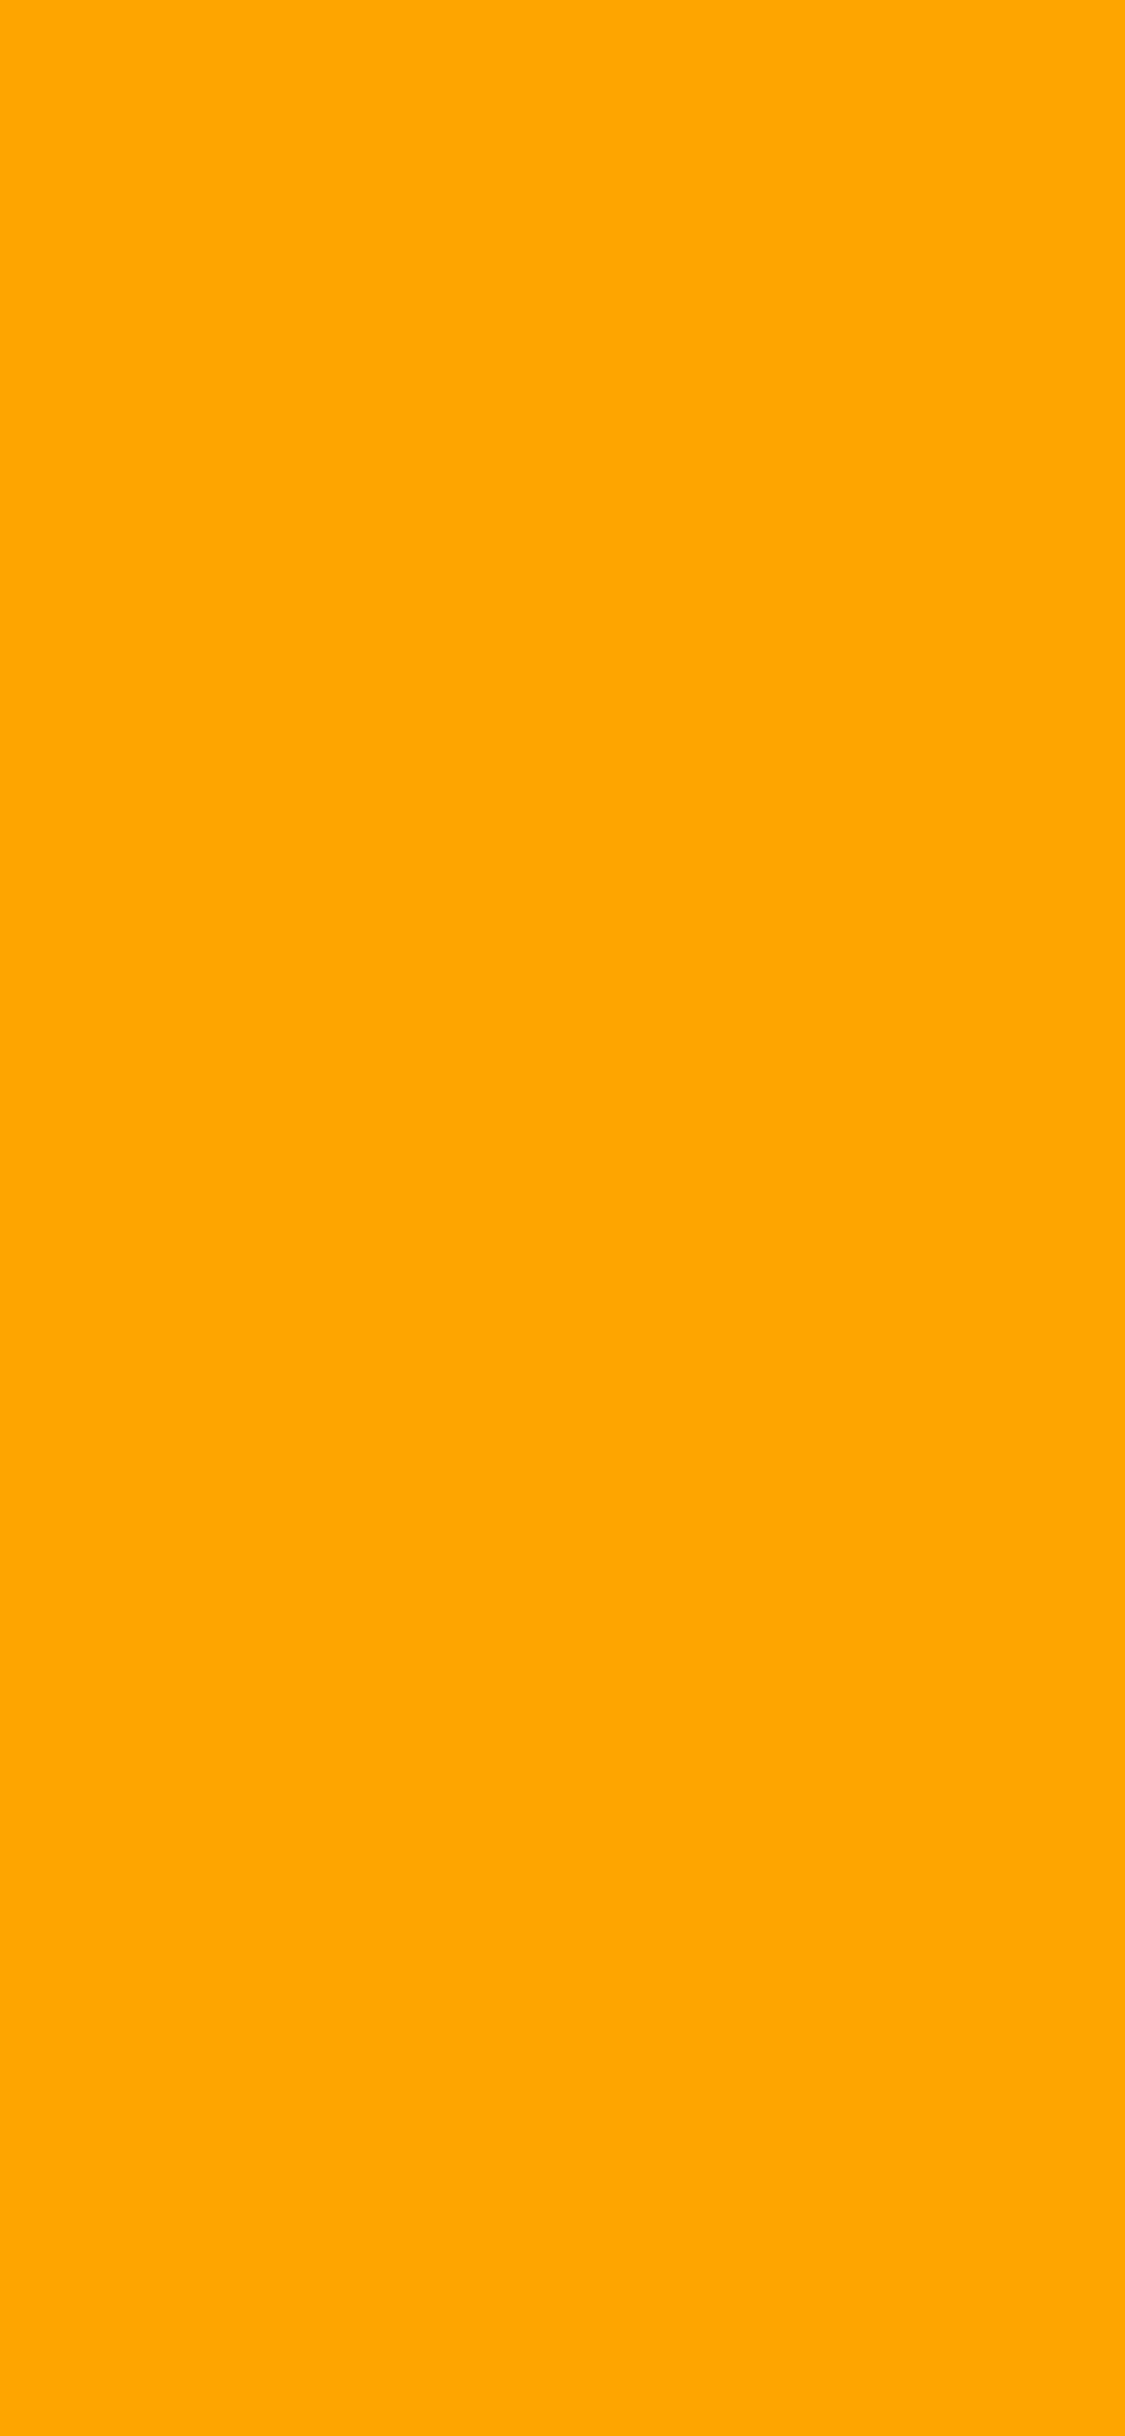 1125x2436 Orange Web Solid Color Background